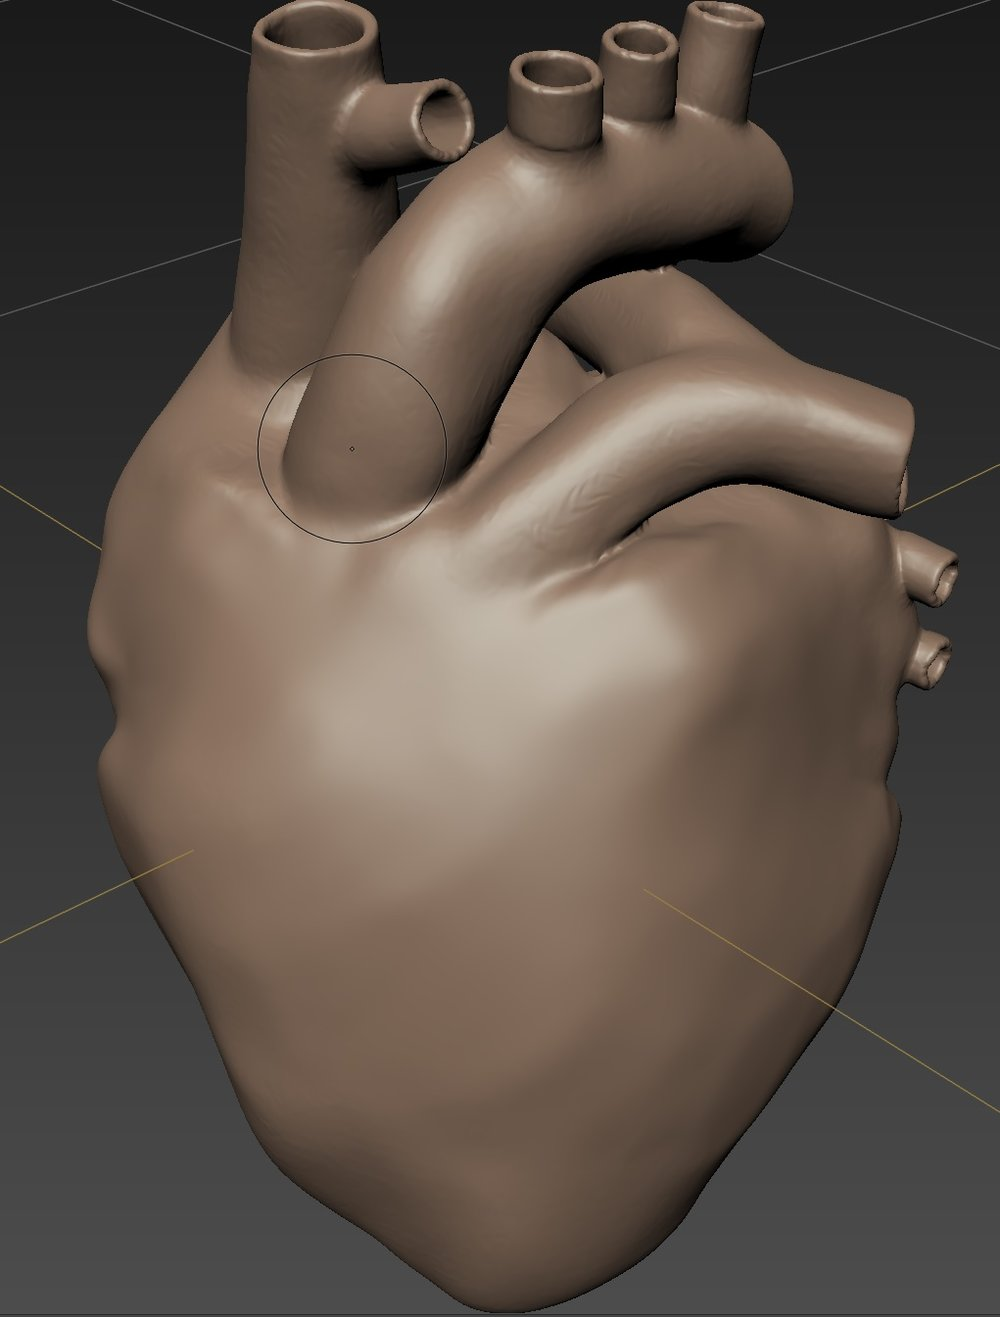 3D heart model rendered without veins.jpg